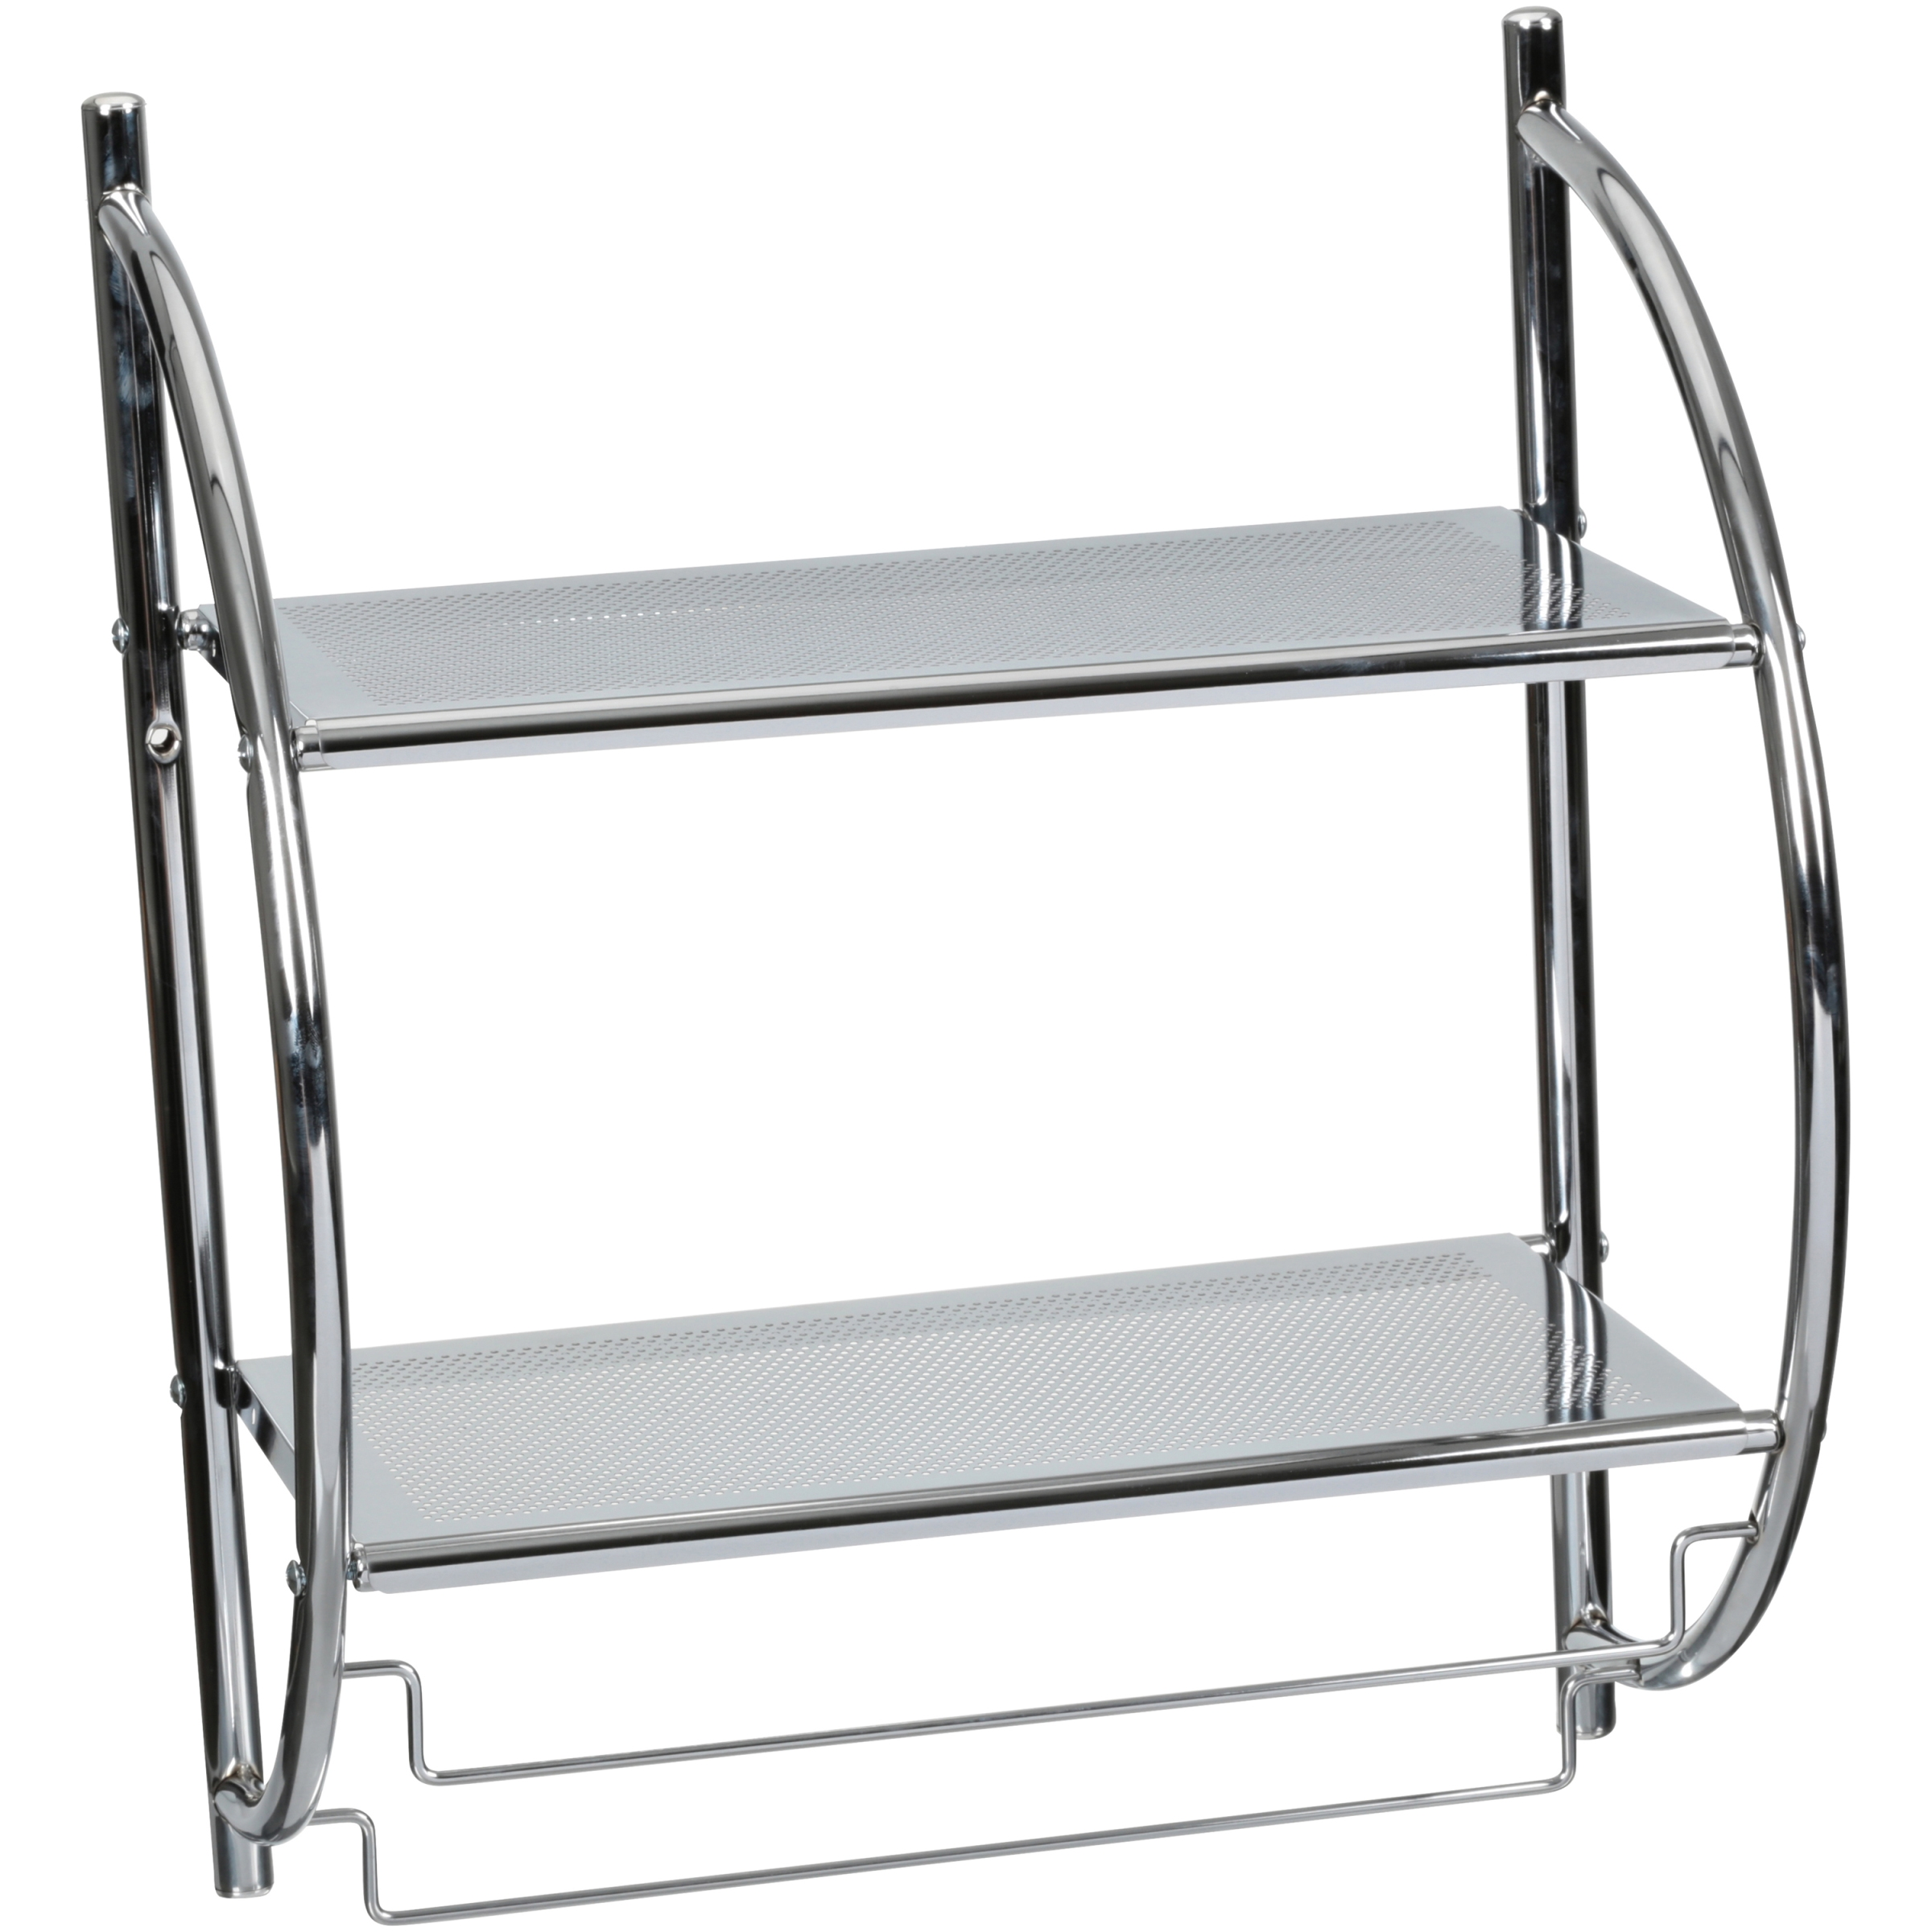 Neu Home® 2 Tier Mounting Shelf with Towel Bars